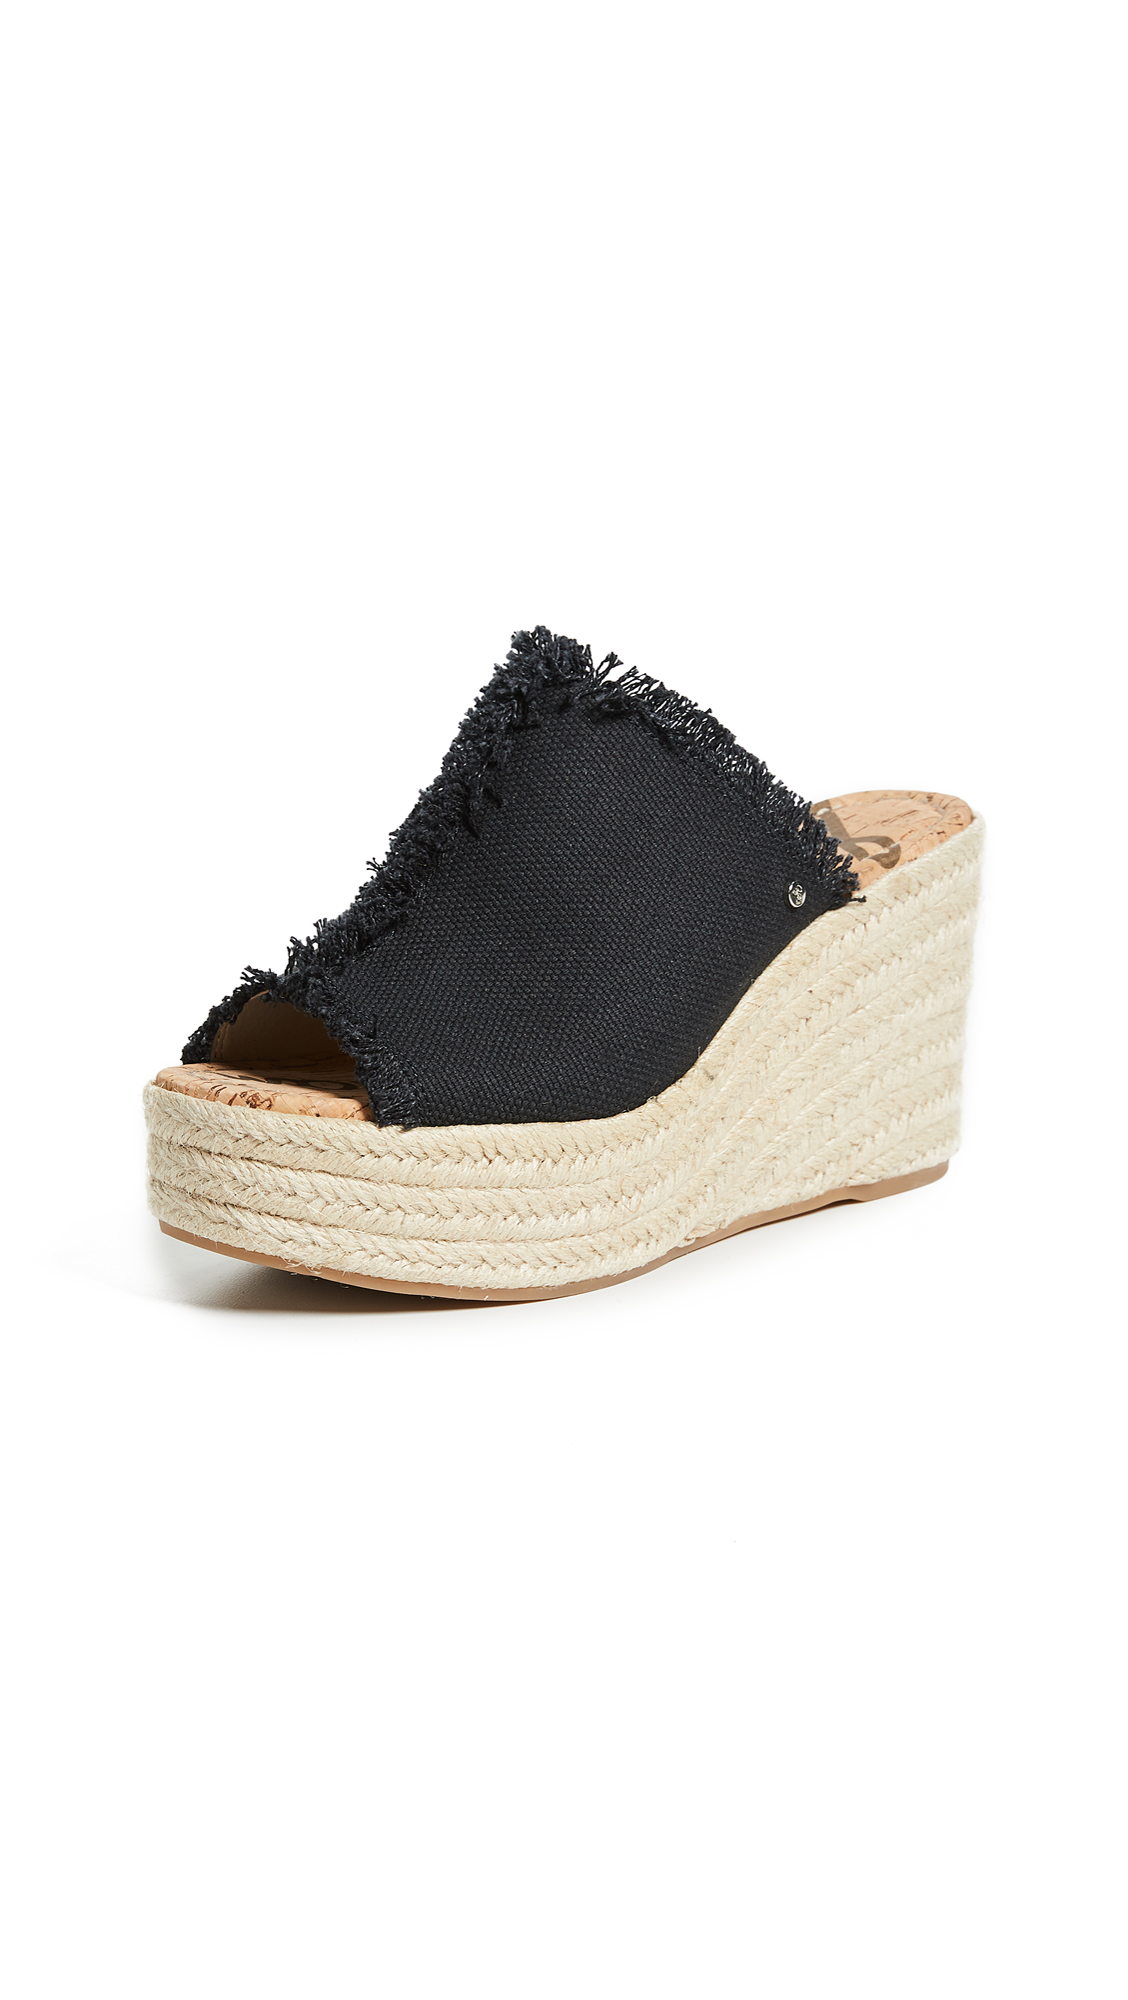 Sam Edelman Dina Espadrille Wedges - Black